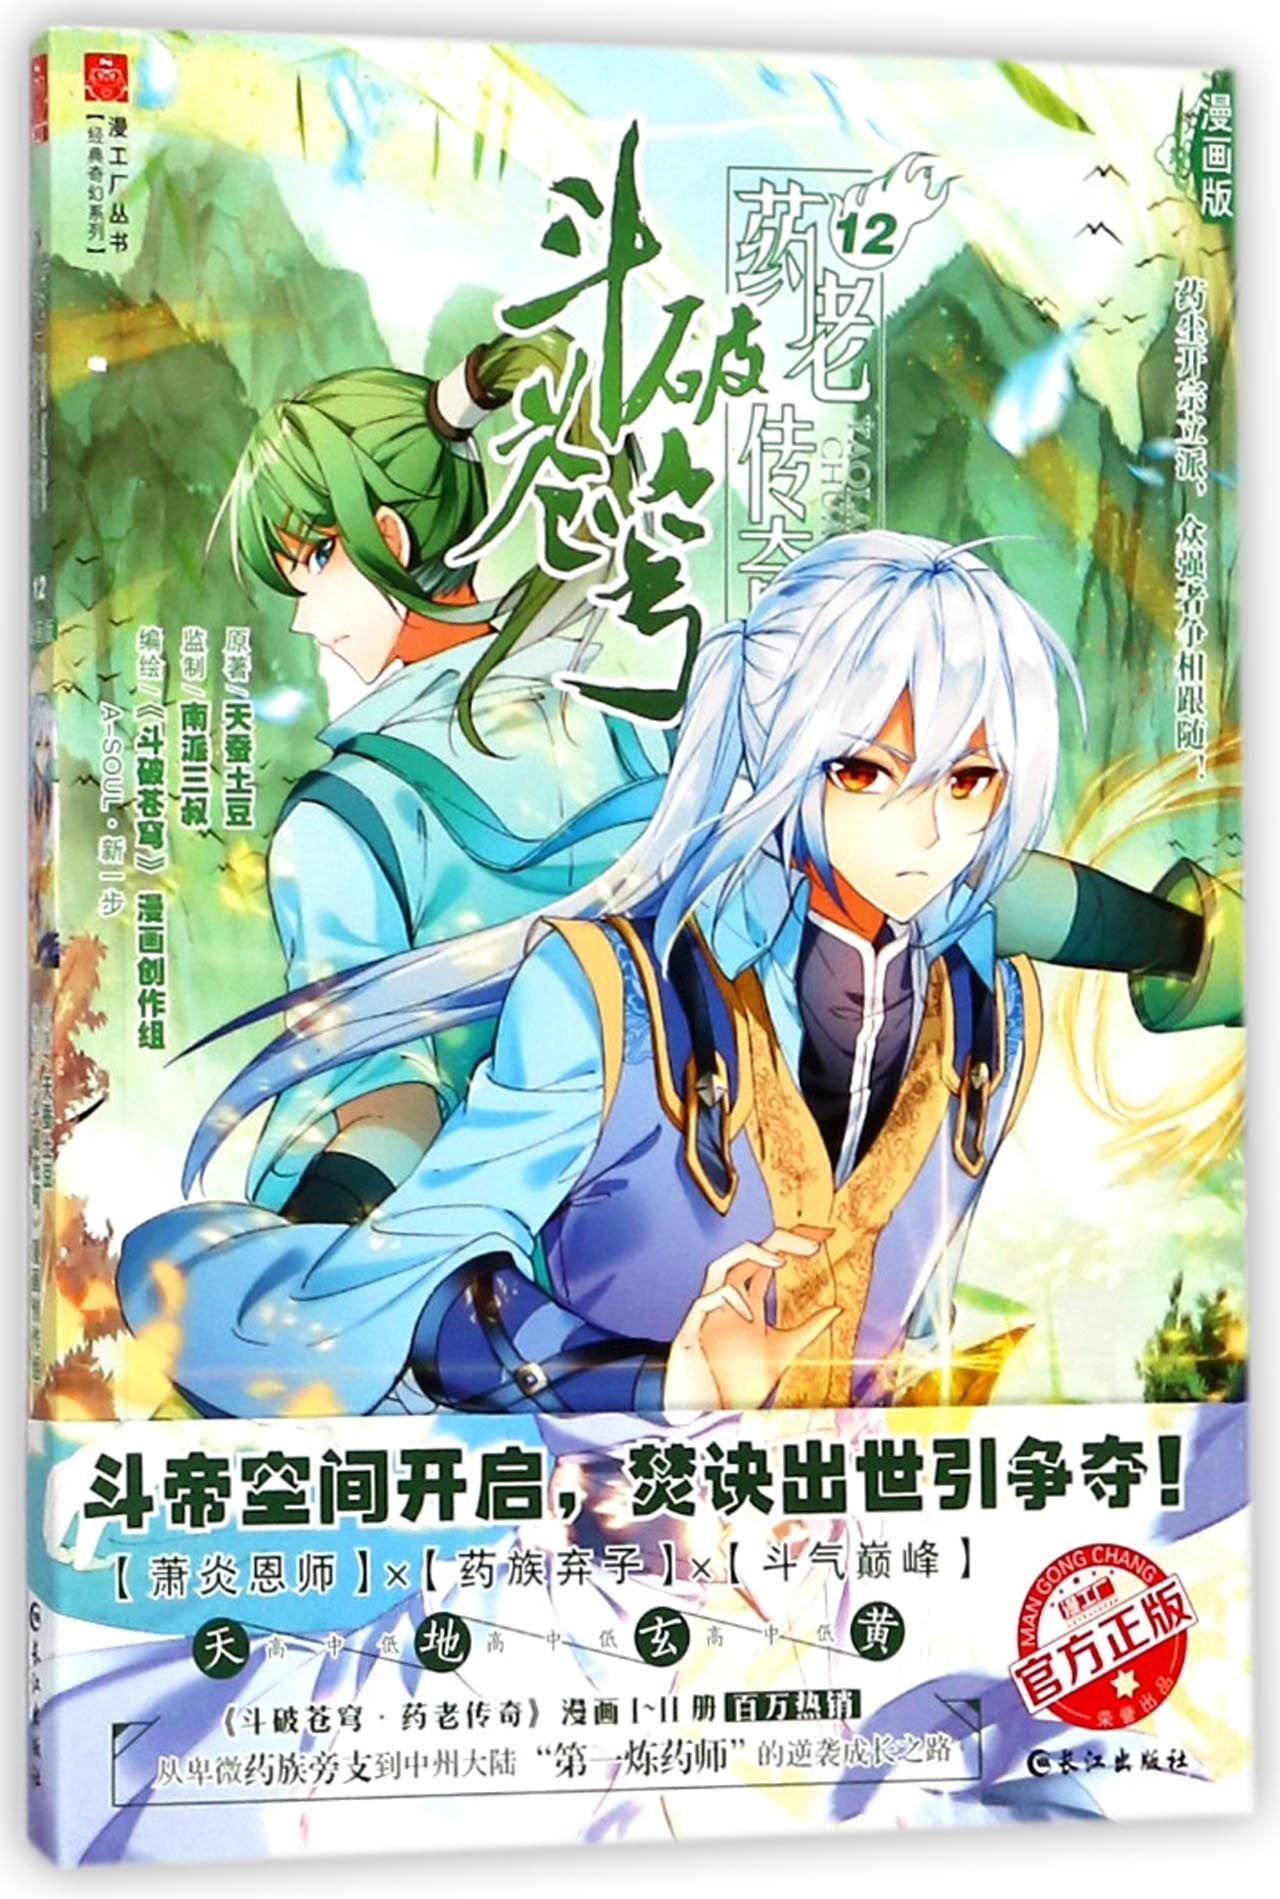 Fights Break the Sky: Legend of the Medicine King - Comic Edition 12 (Chinese Edition) PDF